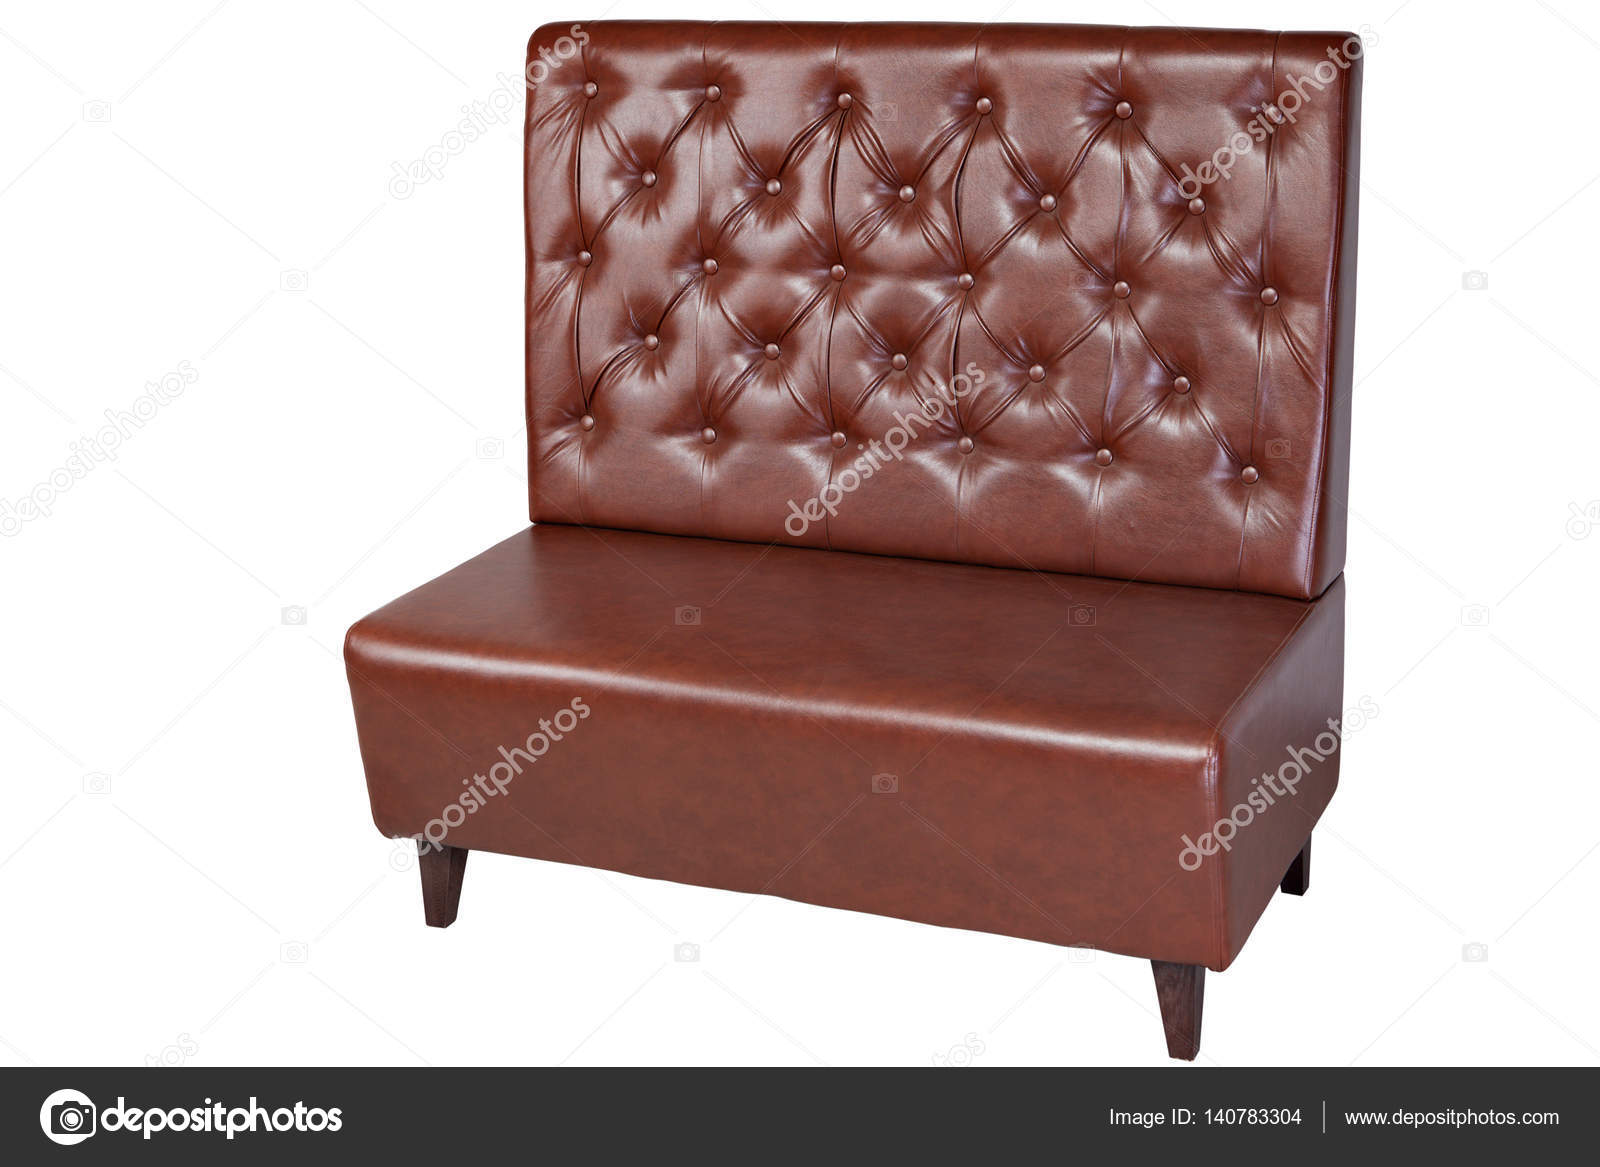 Astonishing Two Seater Brown Imitation Leather Office Couch Isolated On Ibusinesslaw Wood Chair Design Ideas Ibusinesslaworg